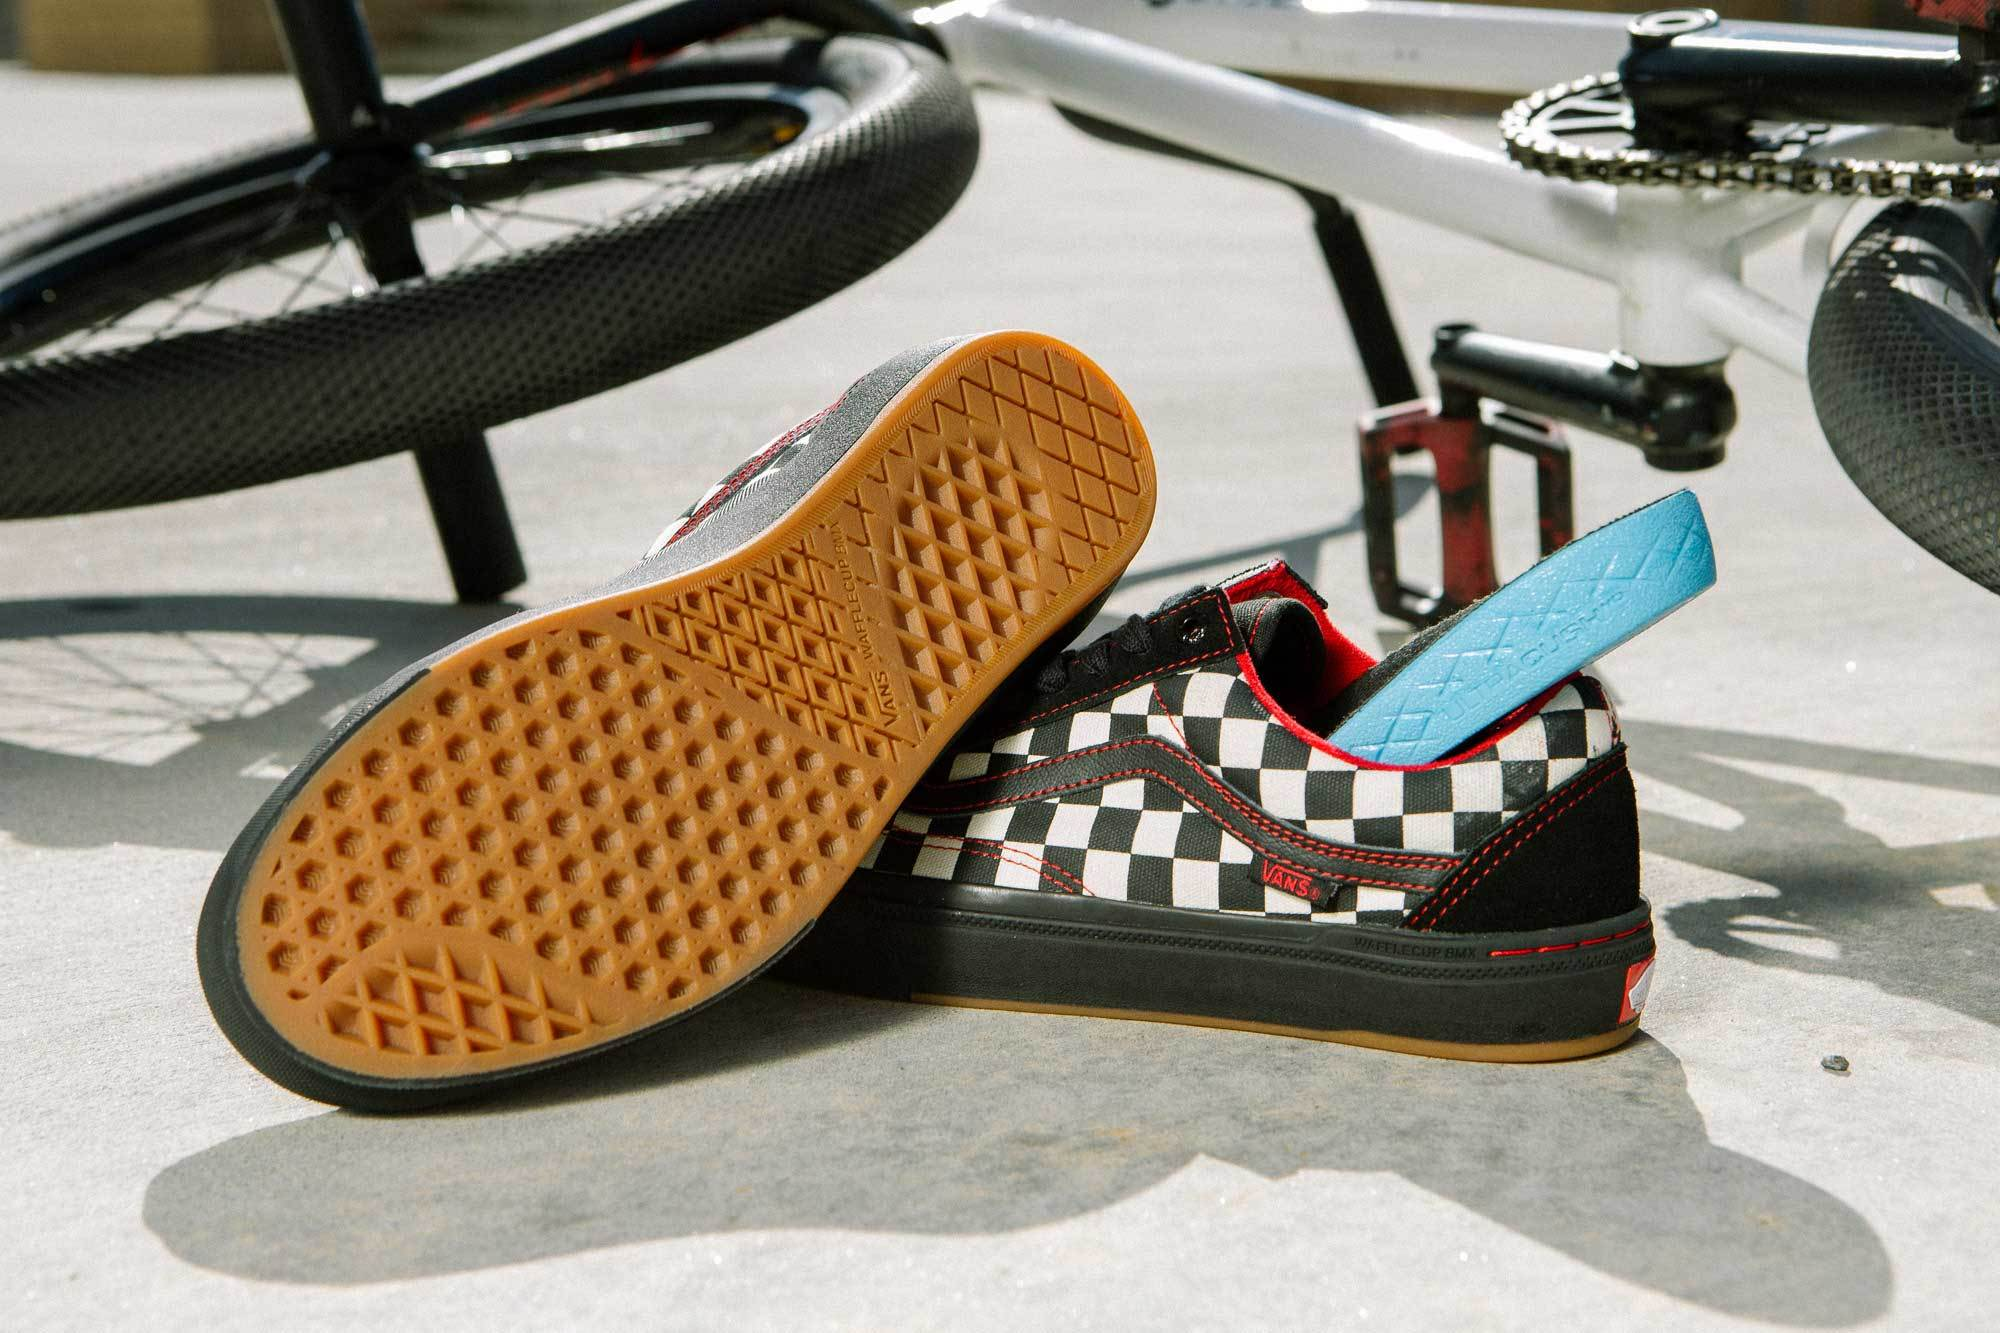 fd722b2c503f PRODUCTIVITY  Kevin Peraza   The New VANS Old Skool Pro BMX - DigBMX